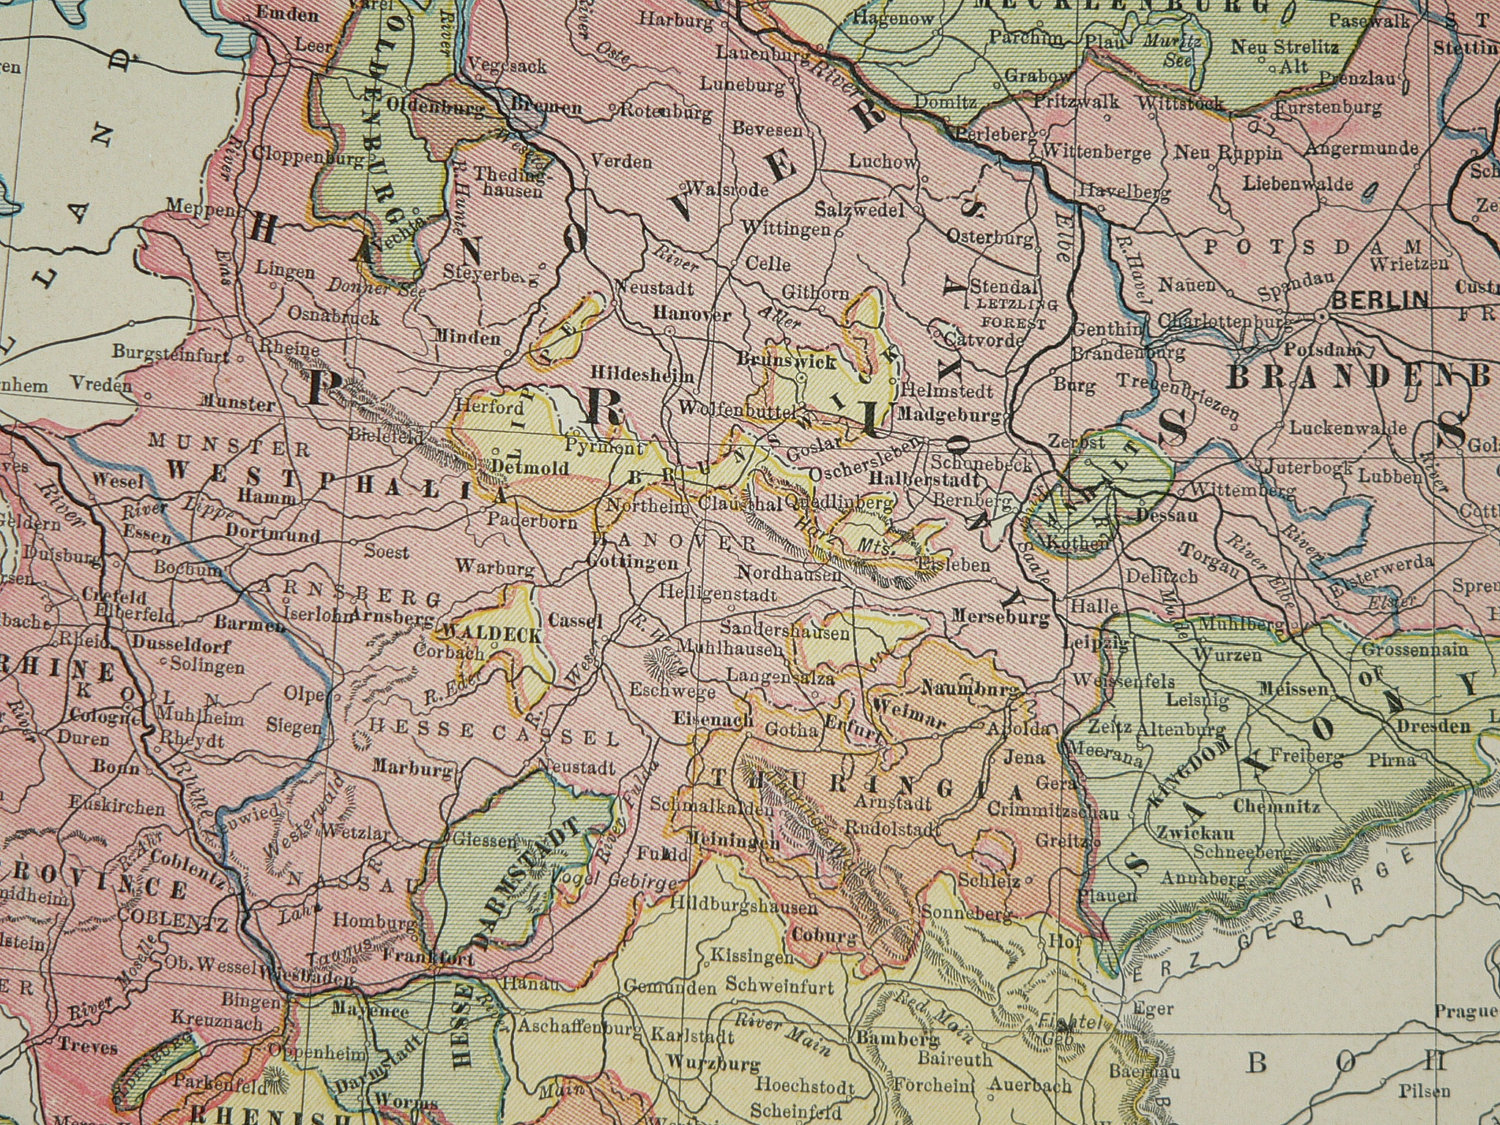 1887 Hannover to Darmstadt